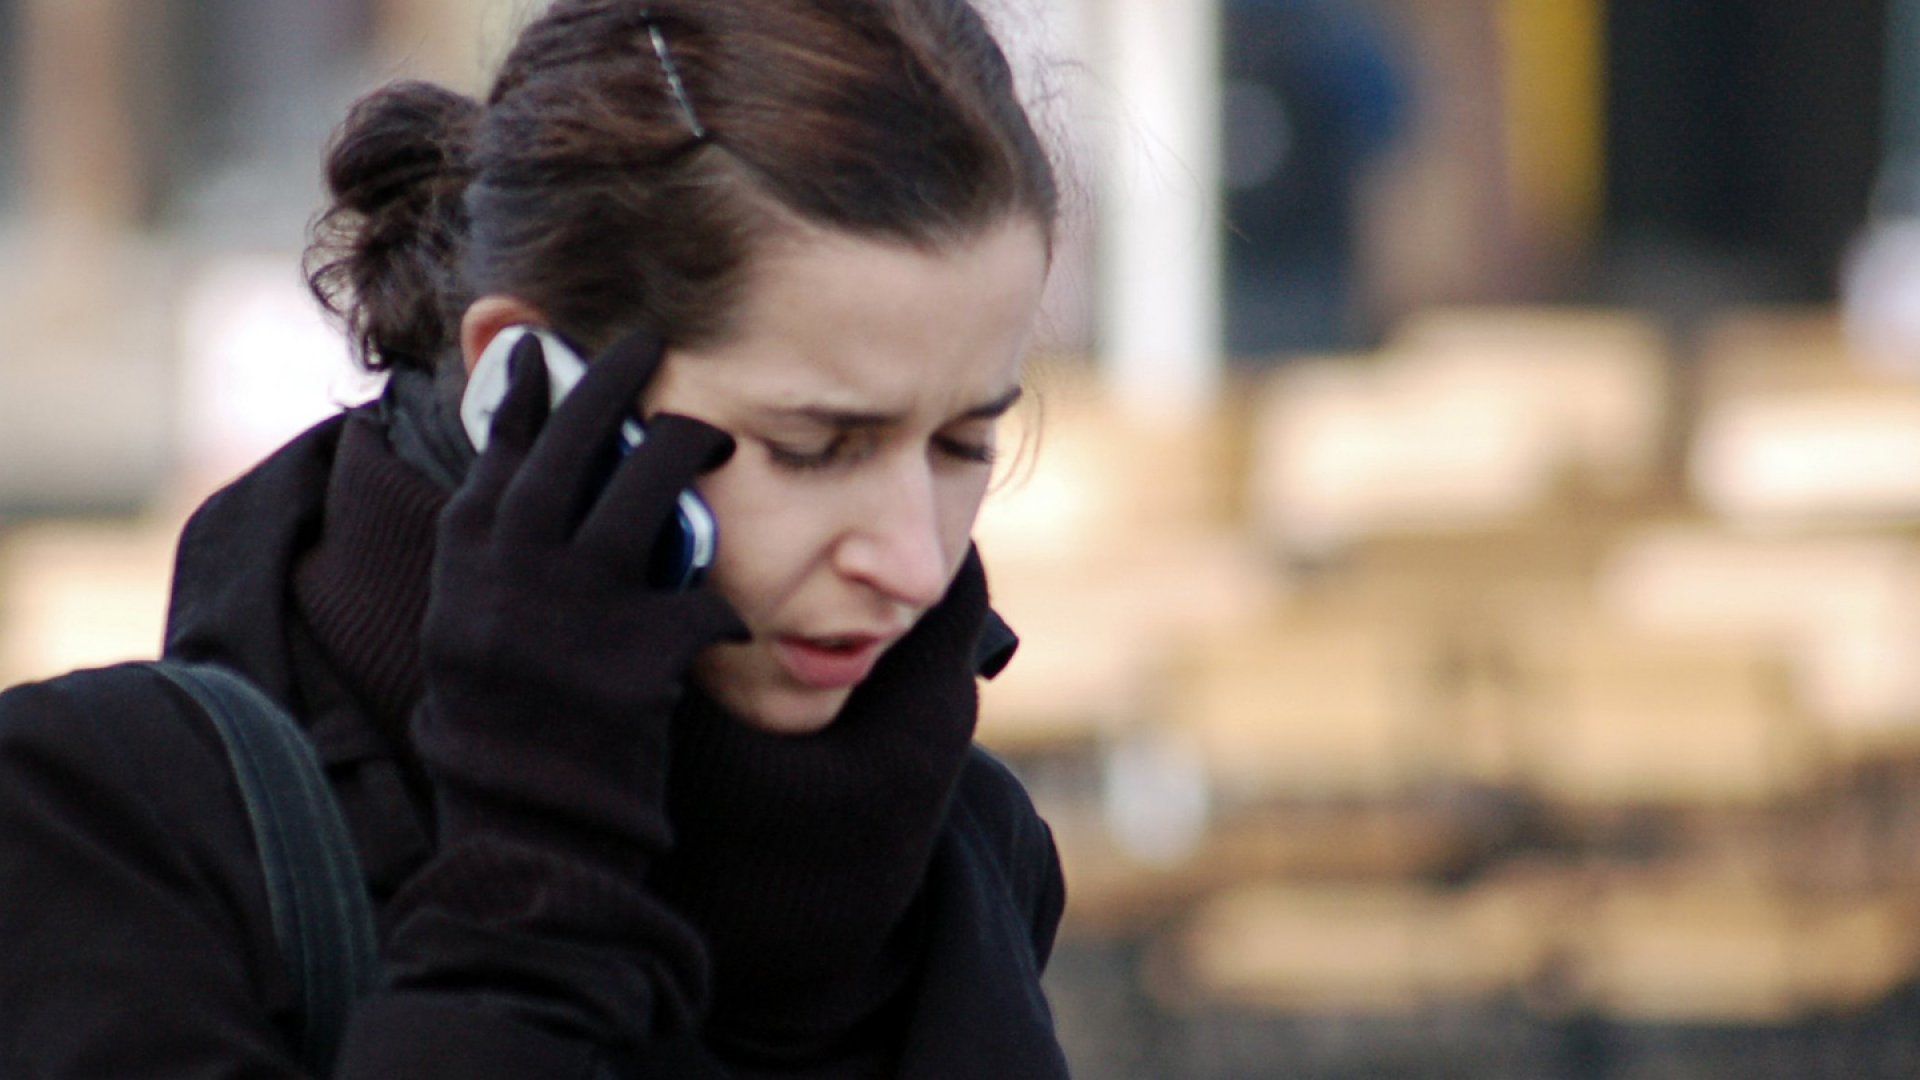 10 Reasons to Pick Up the Phone Now